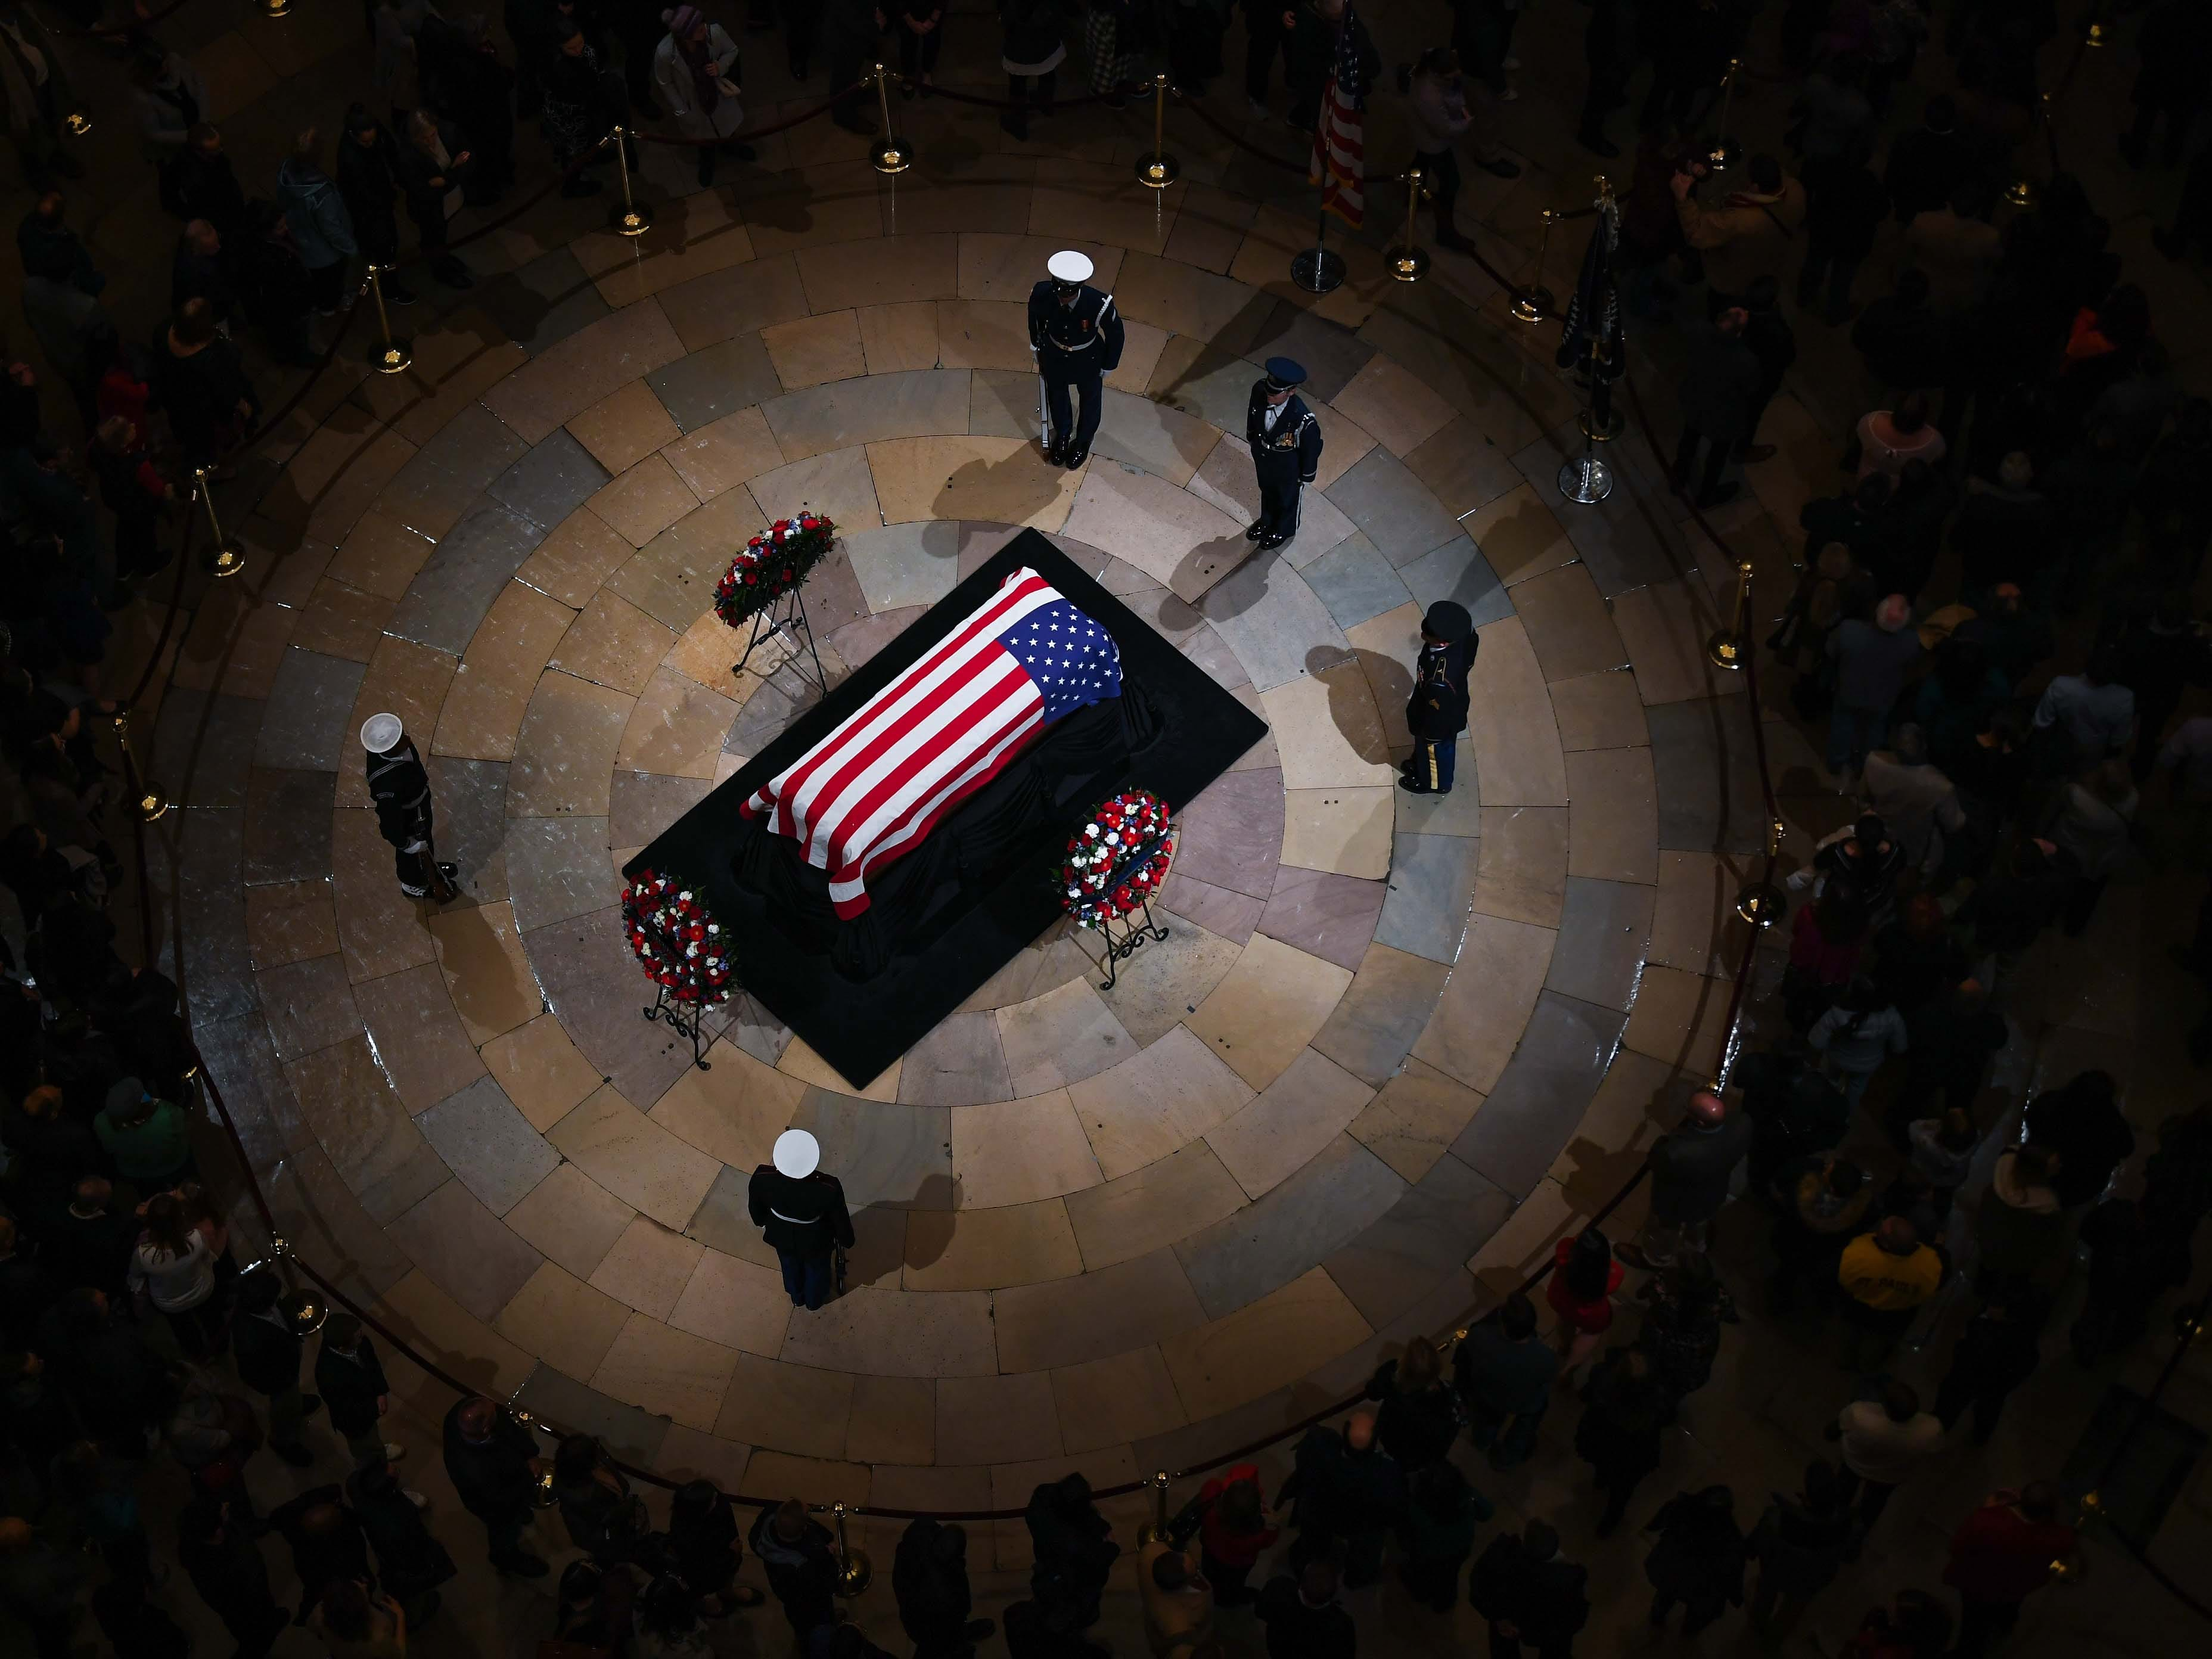 President George H.W. Bush lies in state at the U.S. Capitol Rotunda.